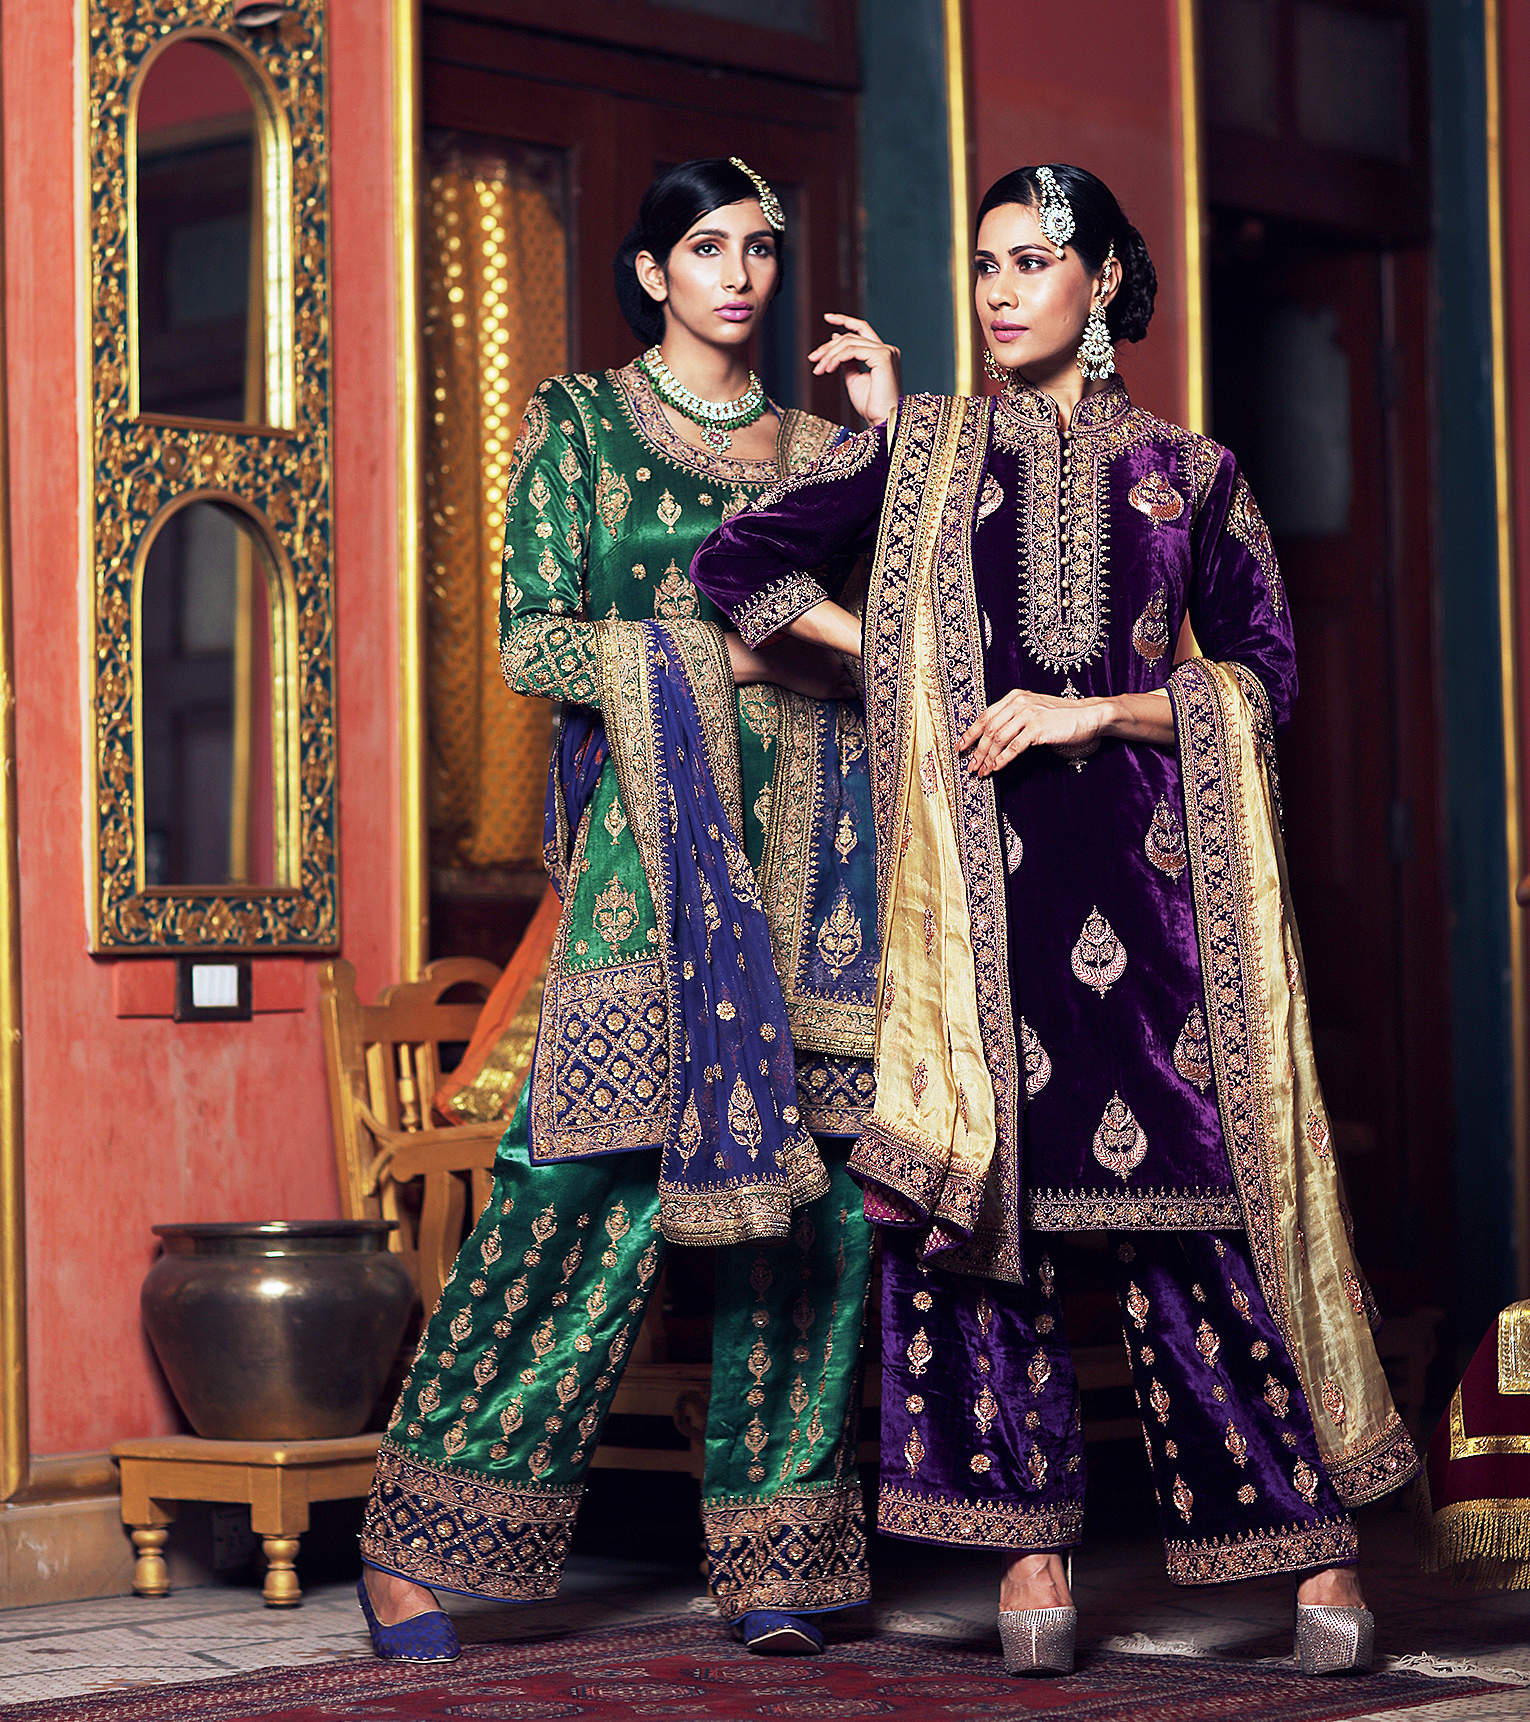 Royal costumes by Umang Hutheesing